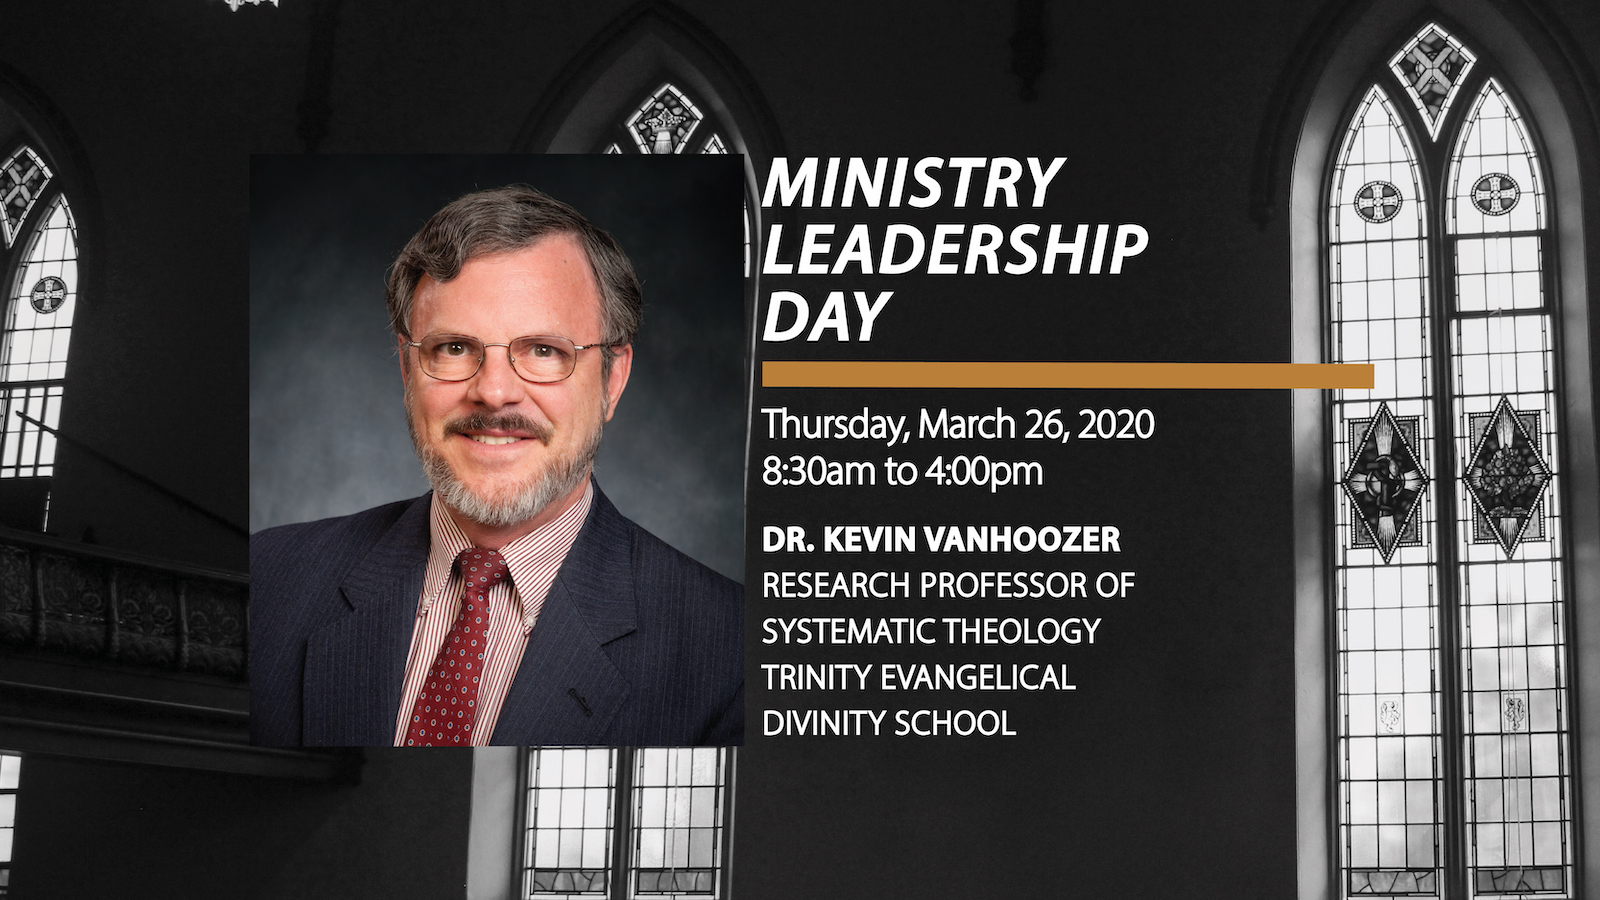 Ministry Leadership Day 2020